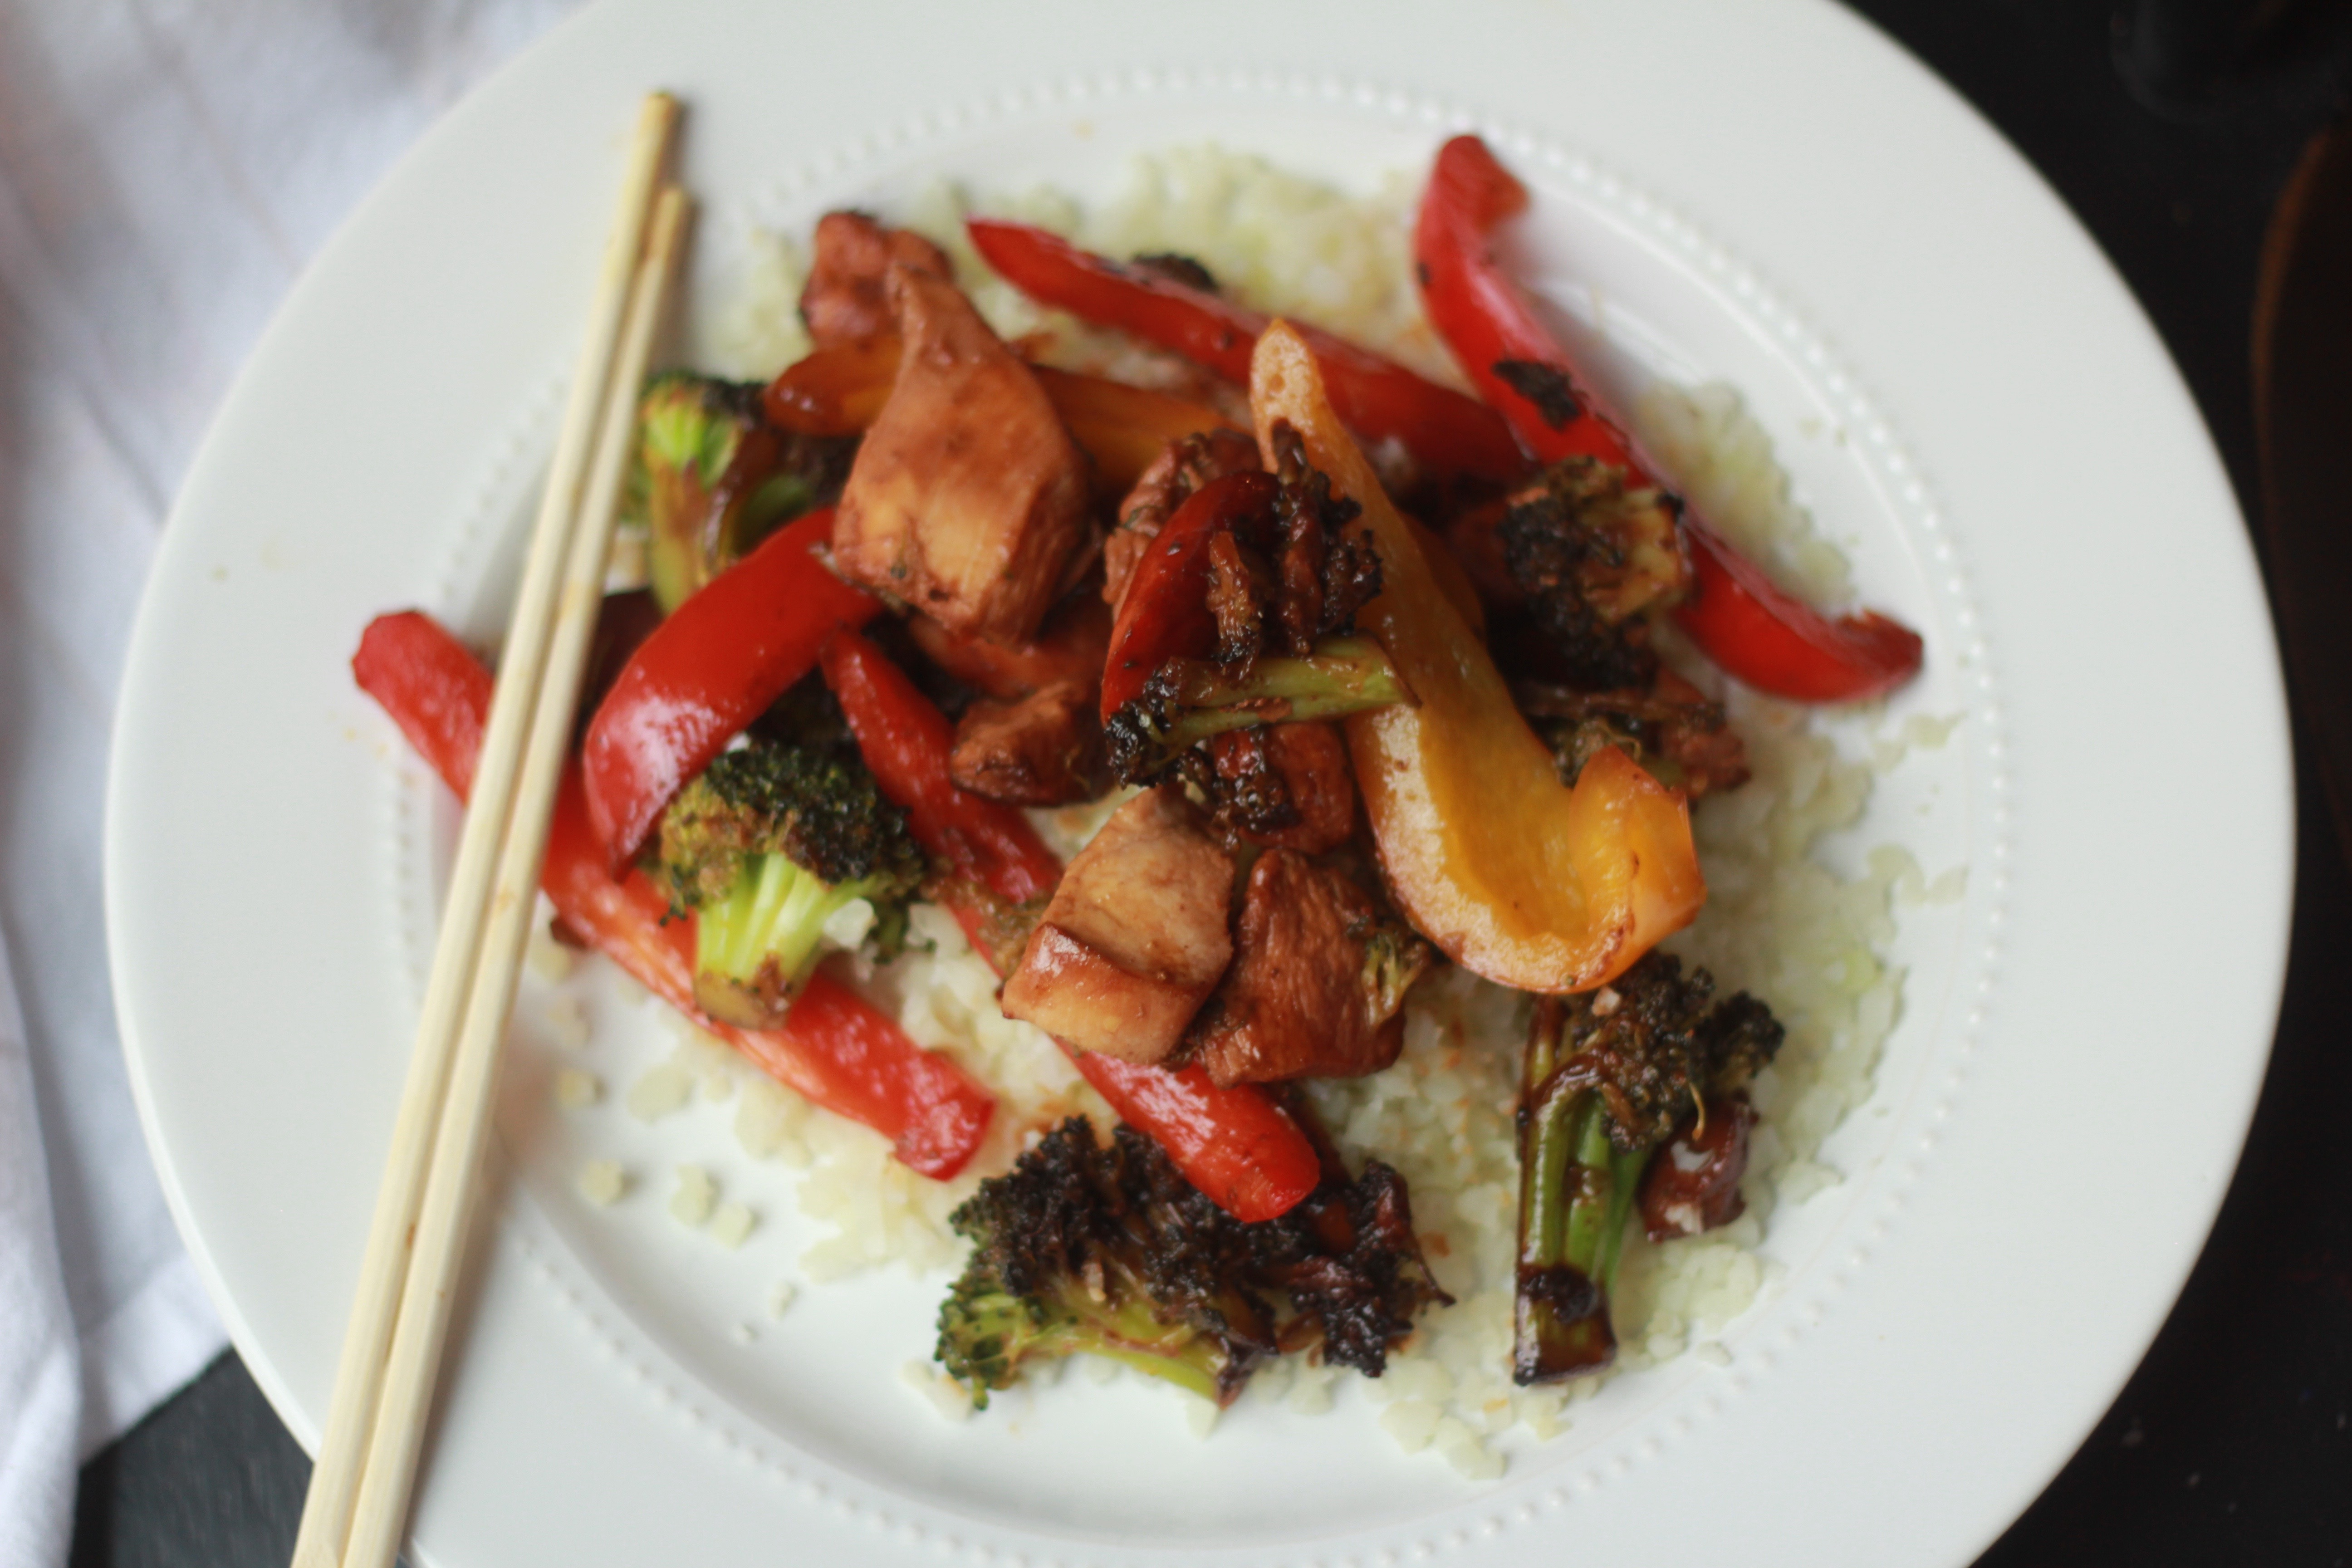 Kid friendly chicken stir fry the humble onion if youve spent a nano second reading this blog you know that im passionate about good food and love learning and coming up with original recipes forumfinder Choice Image